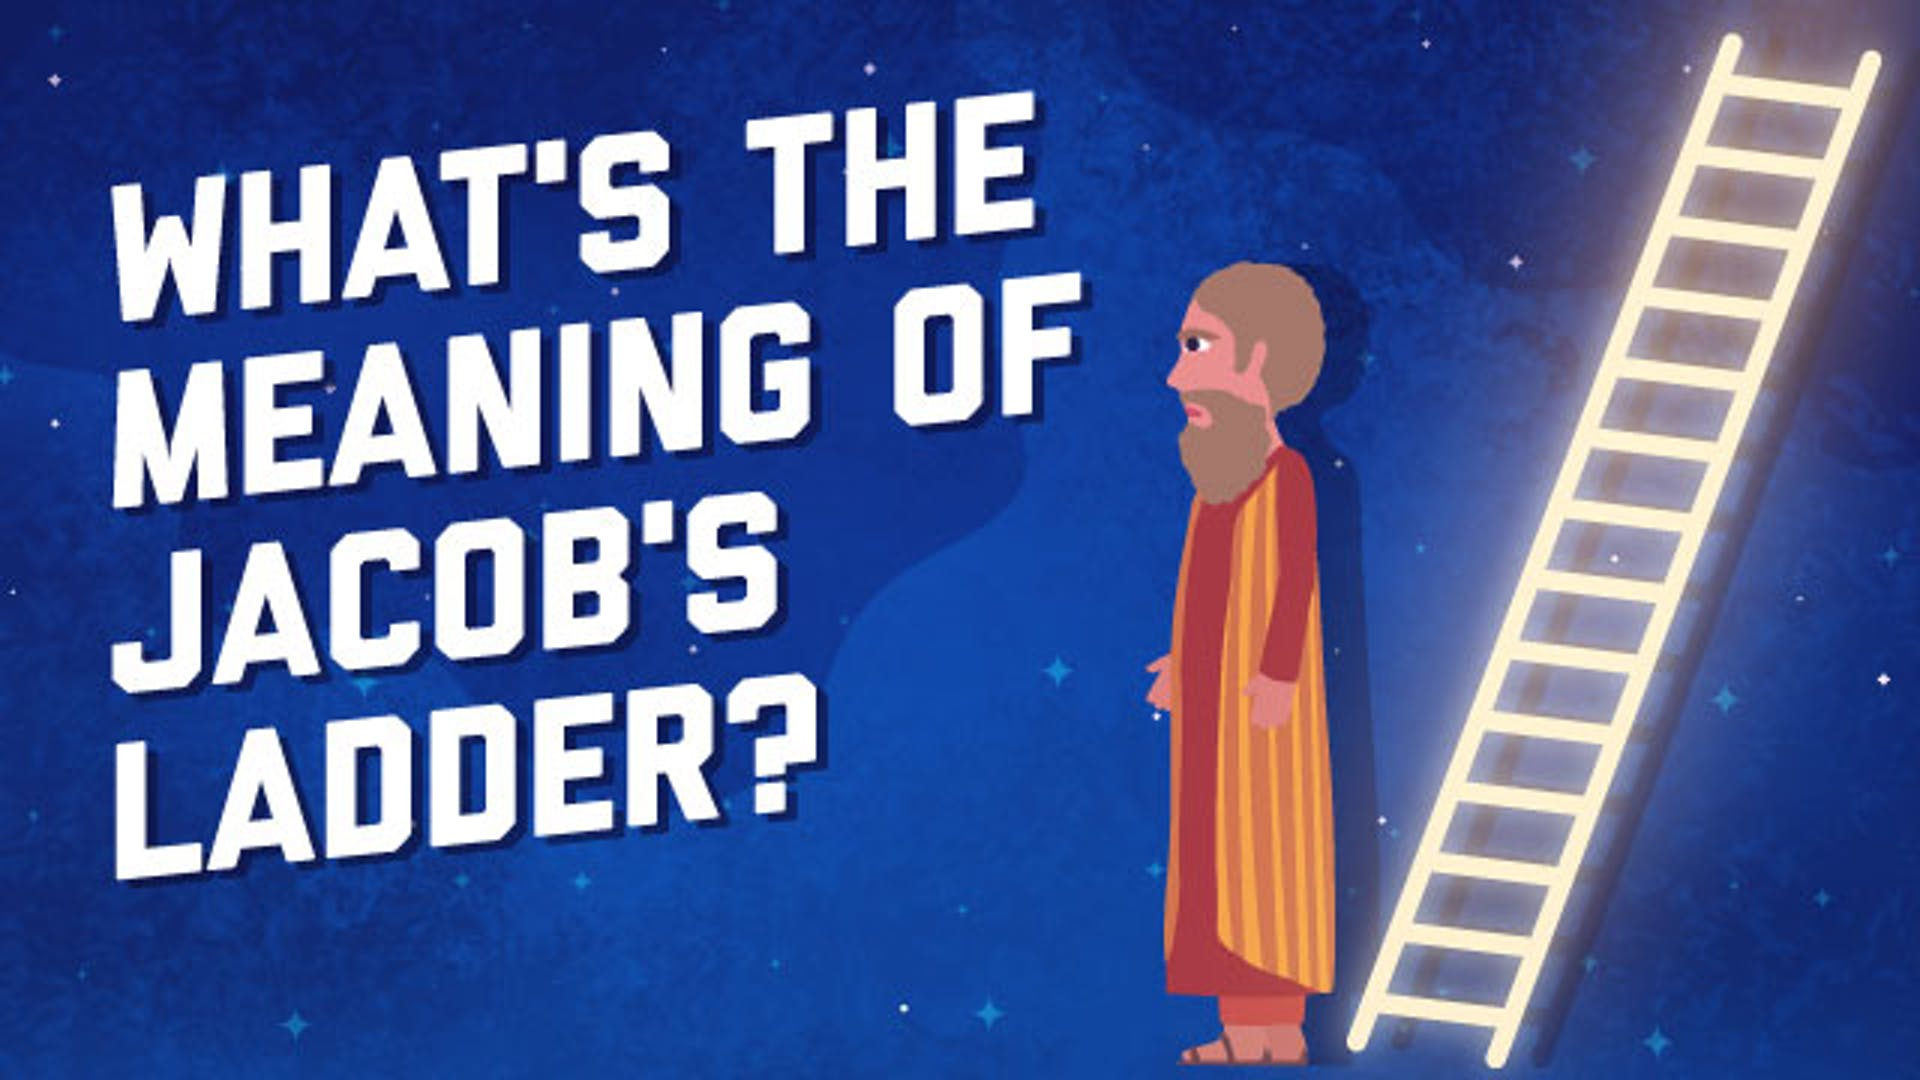 Jacob's ladder meaning